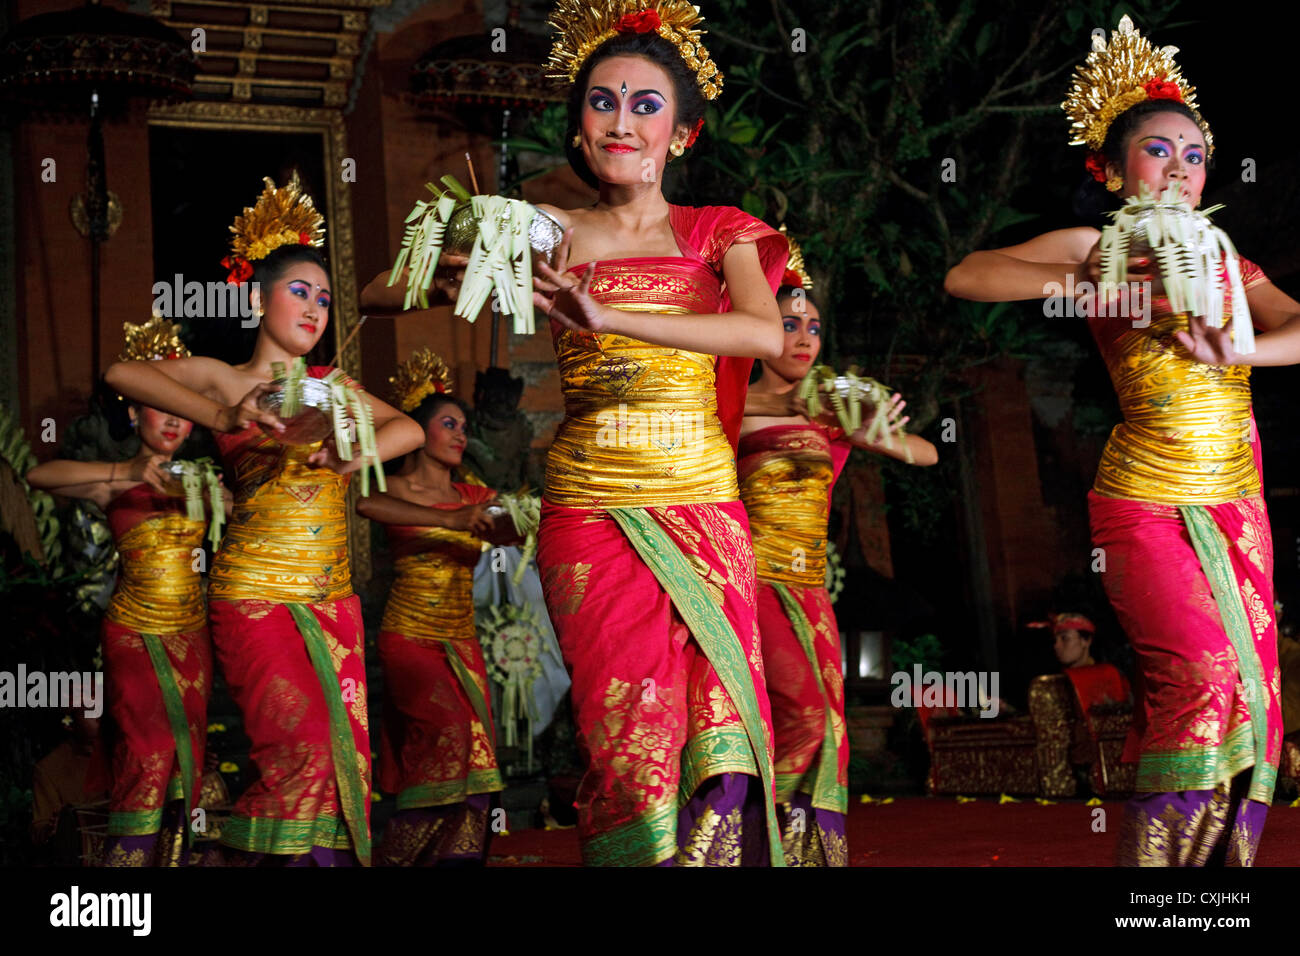 A barong dance performance at outdoor theatre at night in Ubud, Bali, Indonesia - Stock Image